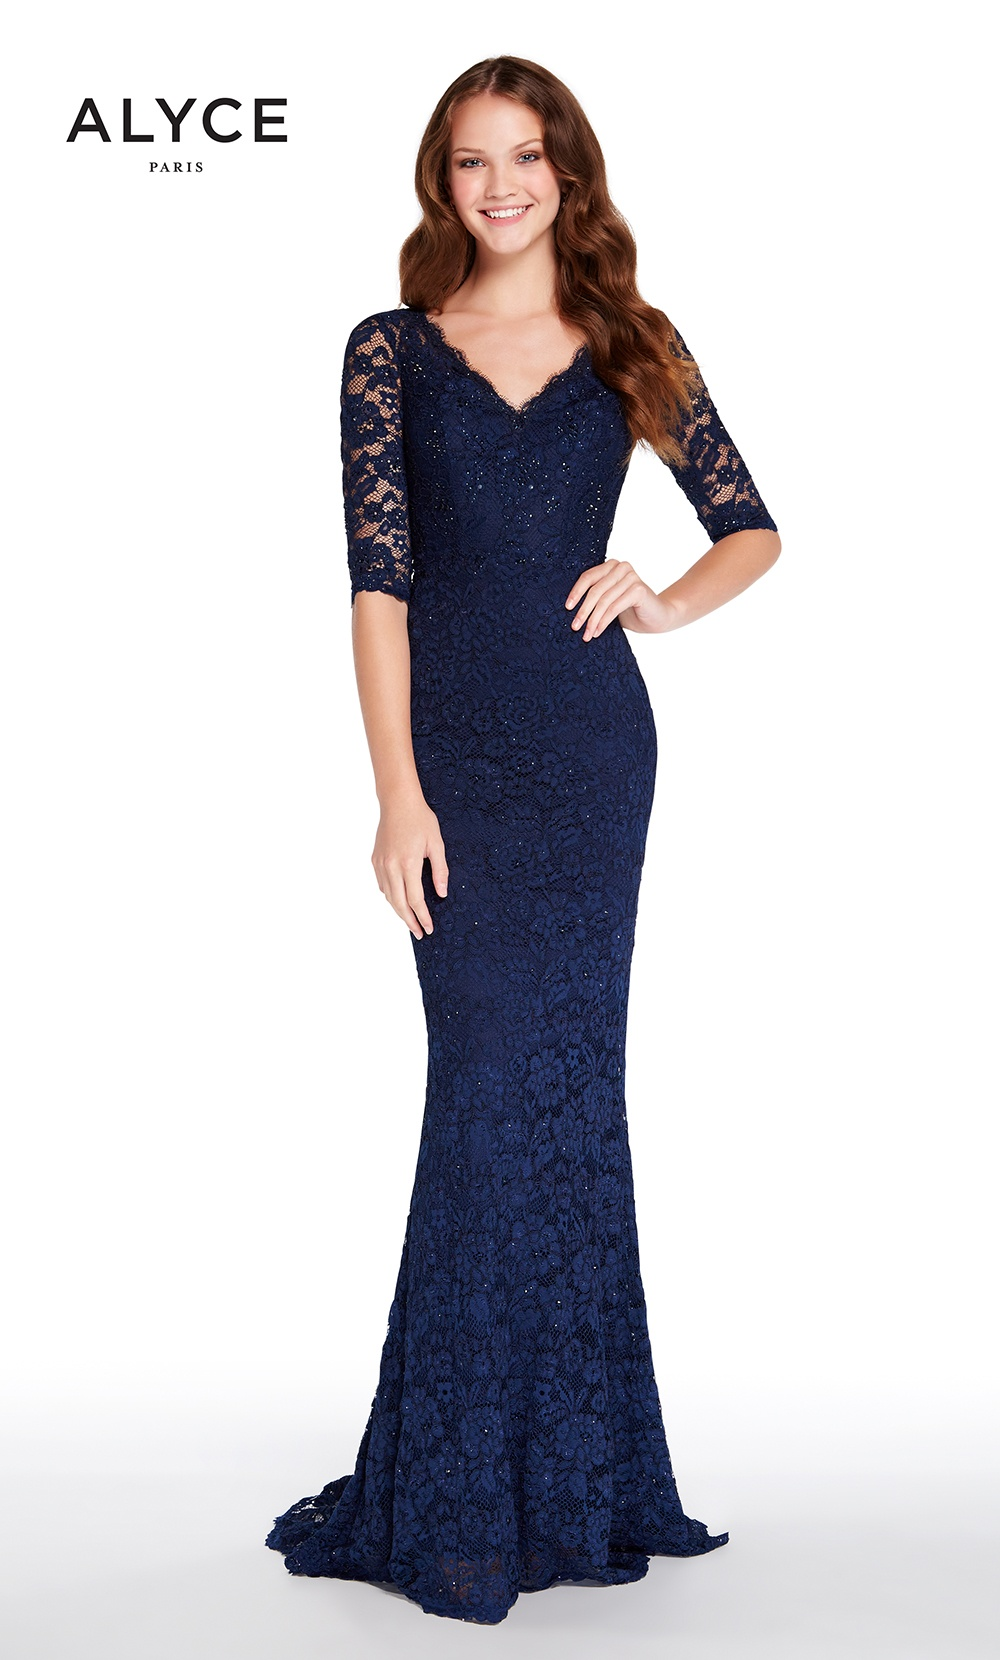 We adore this lace fit-and-flare dress we have in stock by Alyce!Available to order in a variety of colors and sizes.